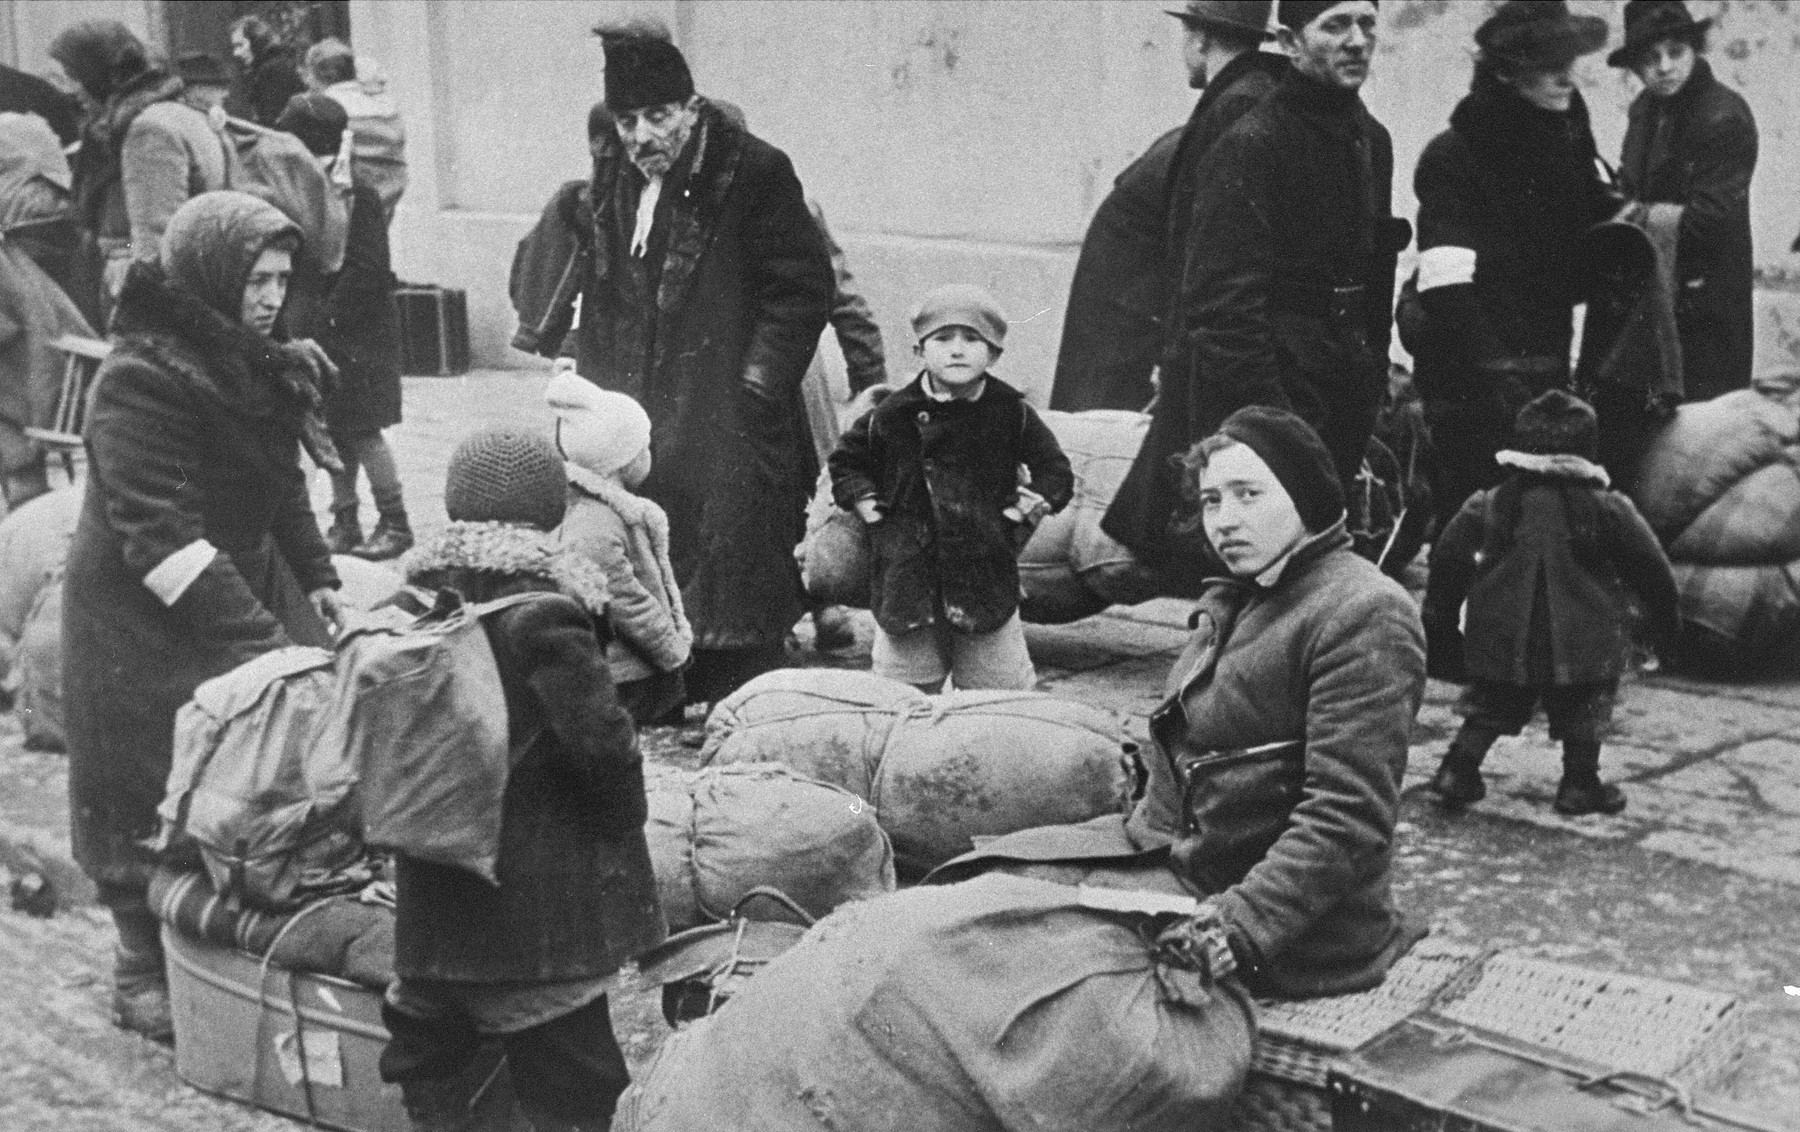 Jews assembled on the street with their bundles.  It is not clear whether they are waiting to be resettled in the Krakow ghetto, or to be taken to the trains during a deportation action in the ghetto.